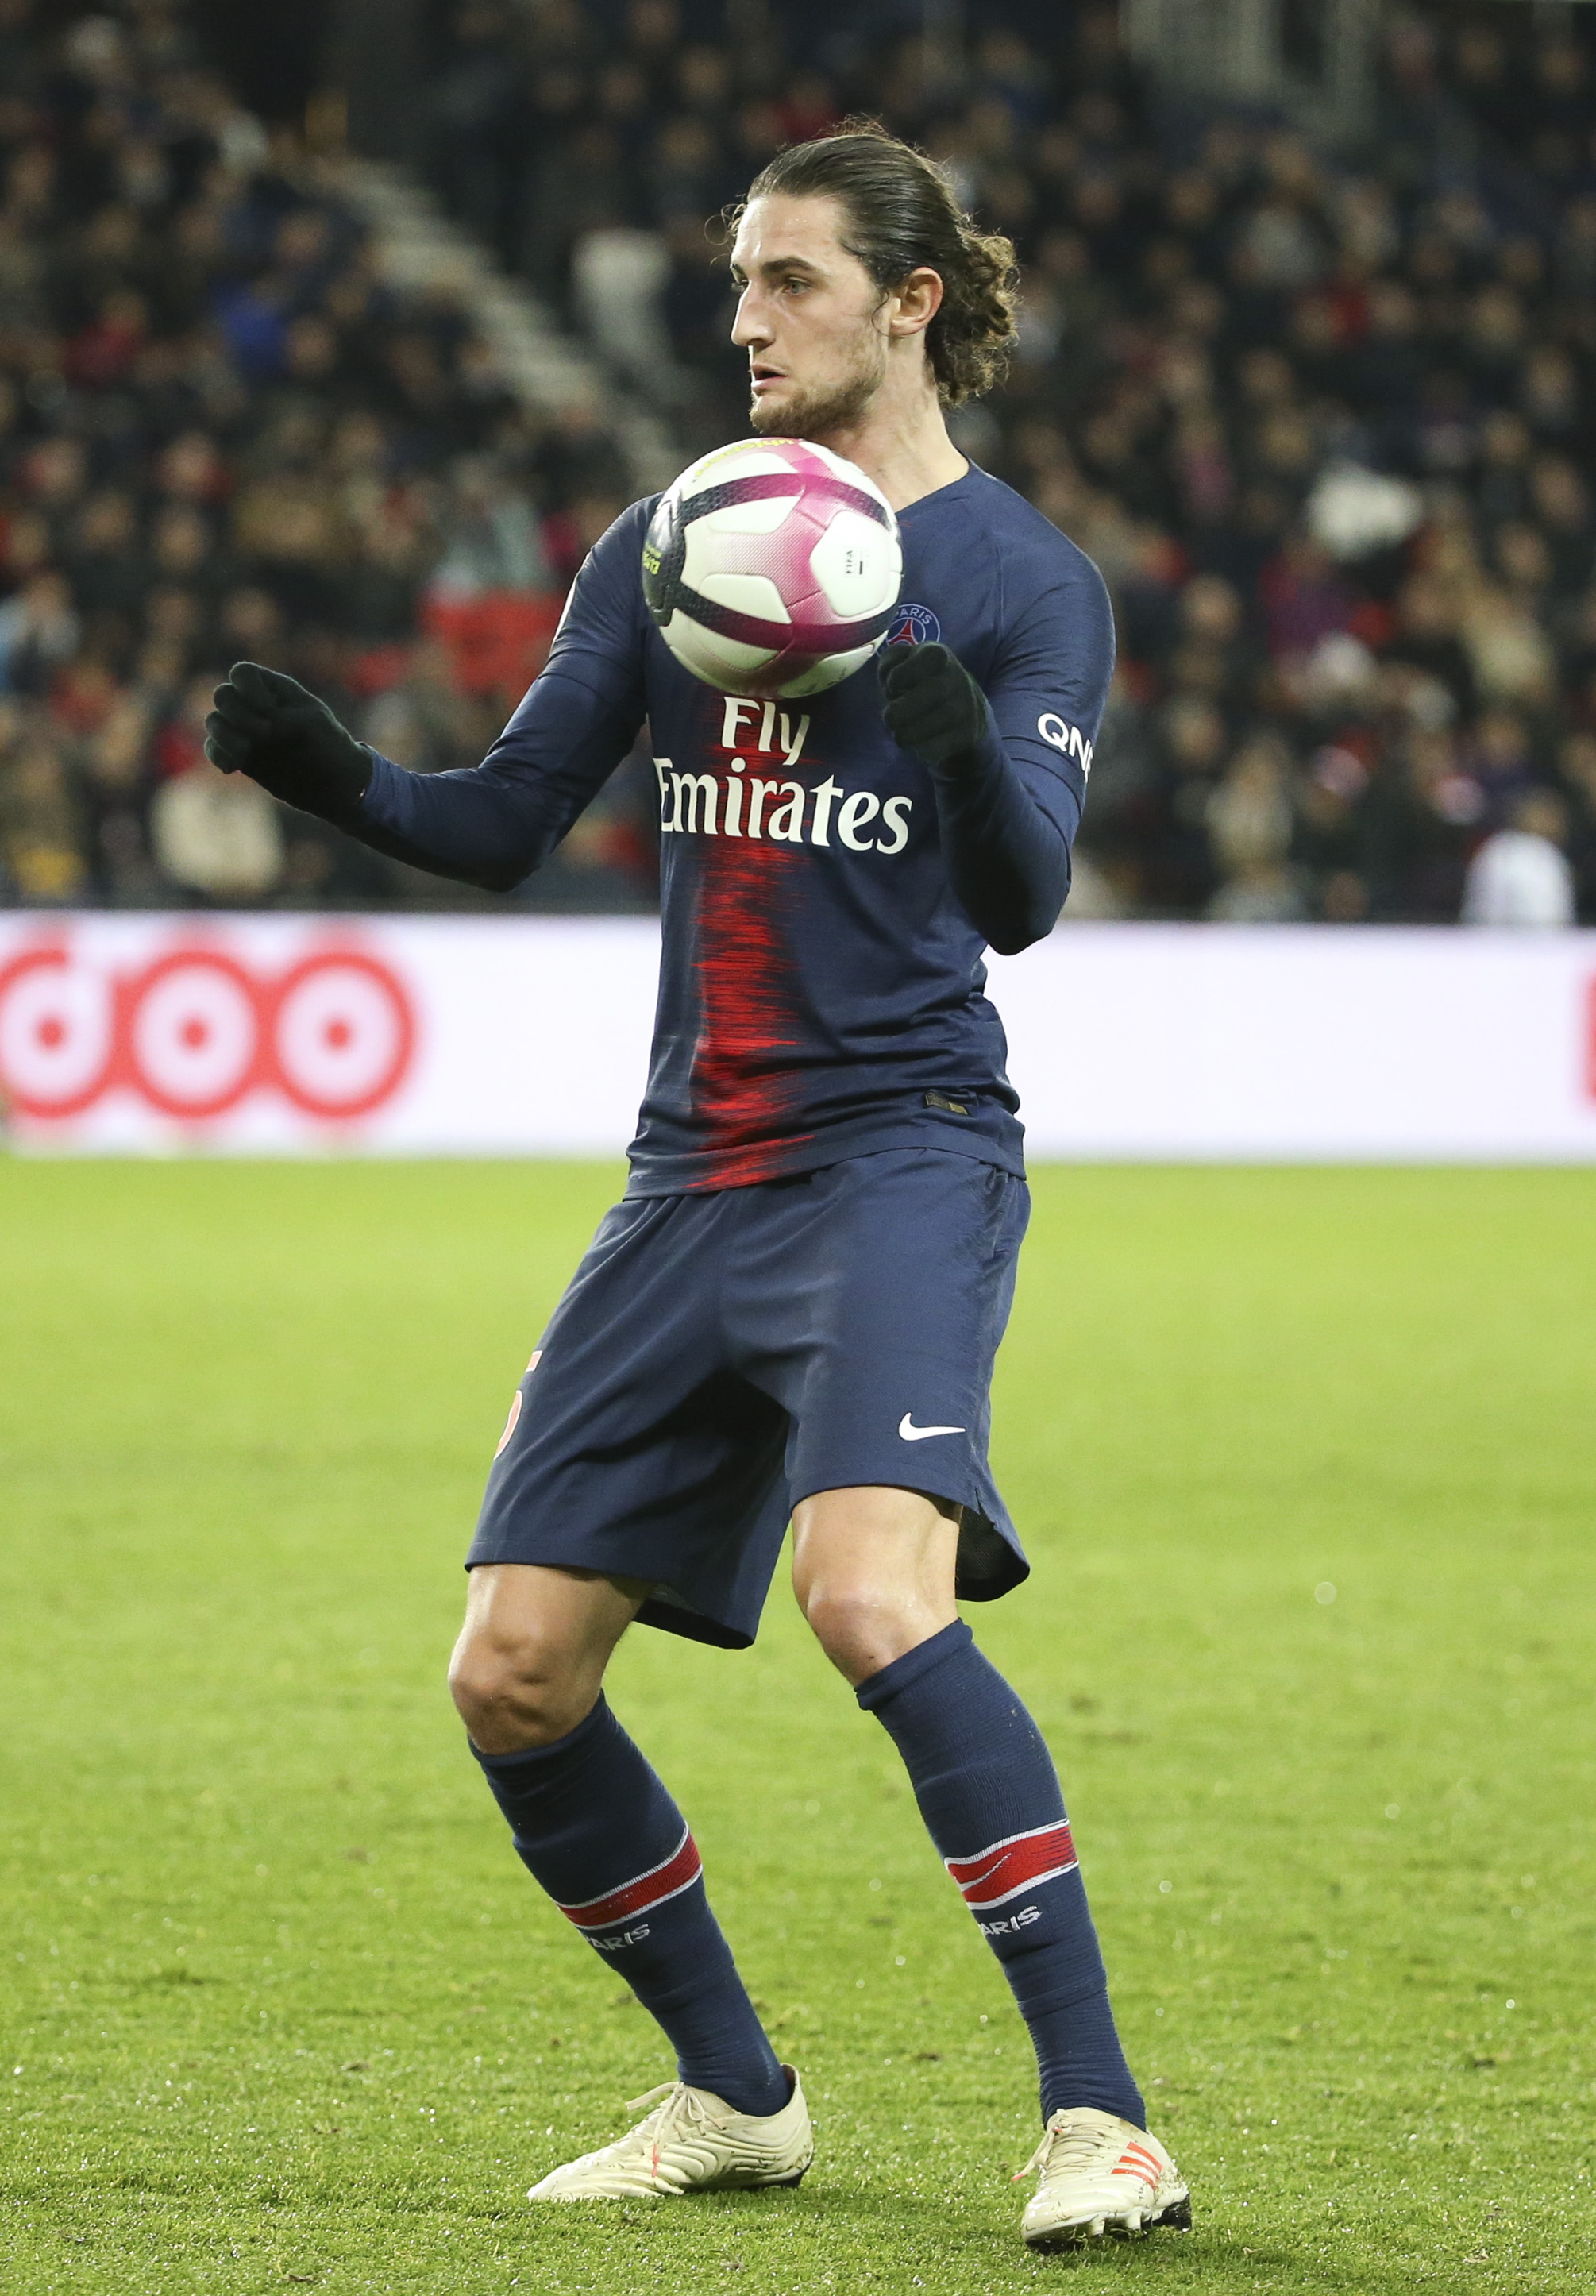 64ad3c08761 Barcelona agree deal with Adrien Rabiot - report. By Barca Blaugranes ...